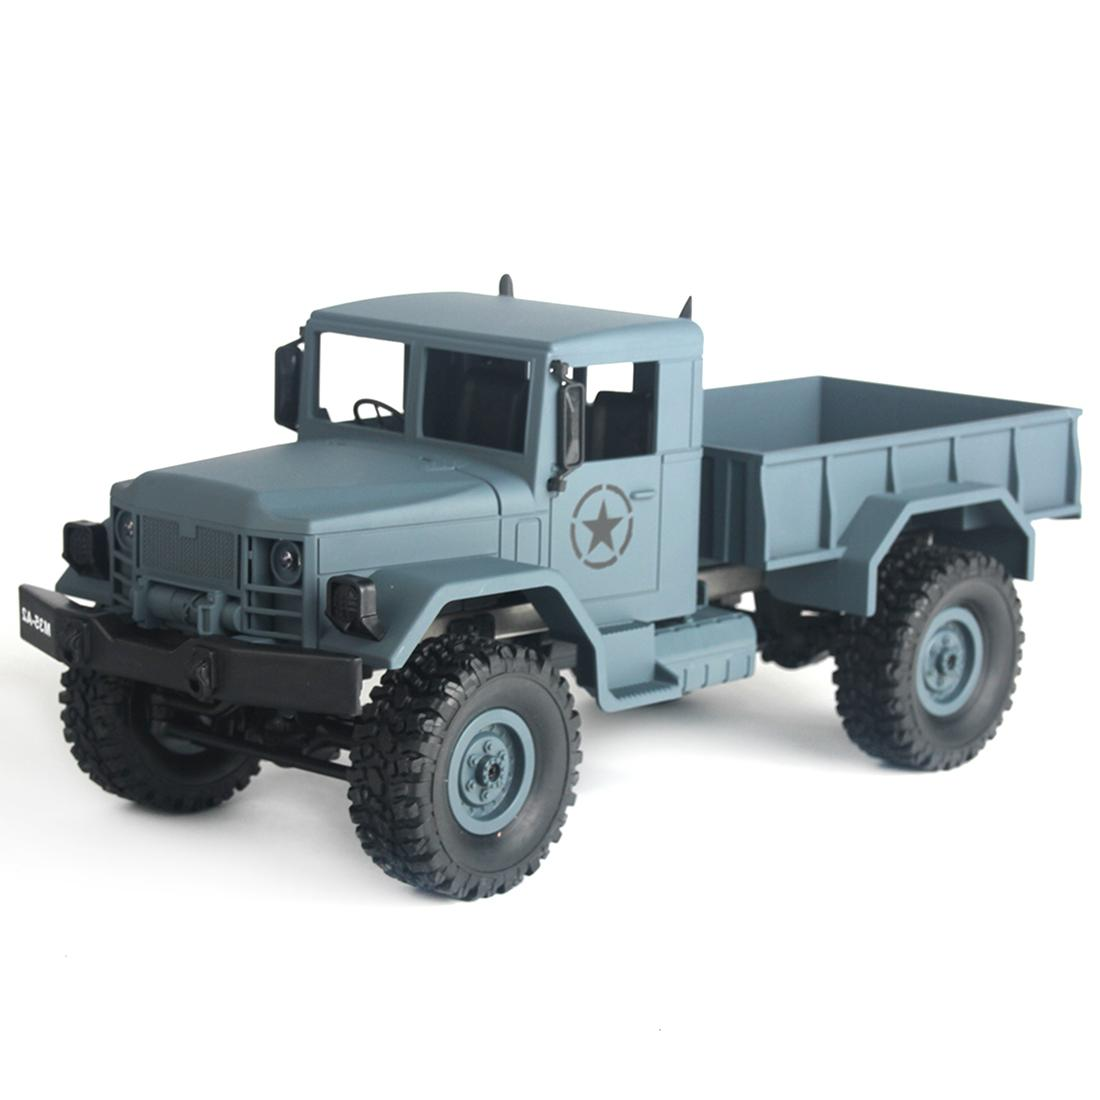 15 Mins Working Time MNMODLl MN-35 2.4G Four-wheel Drive Climbing RC Truck Camion RC Toys for Children